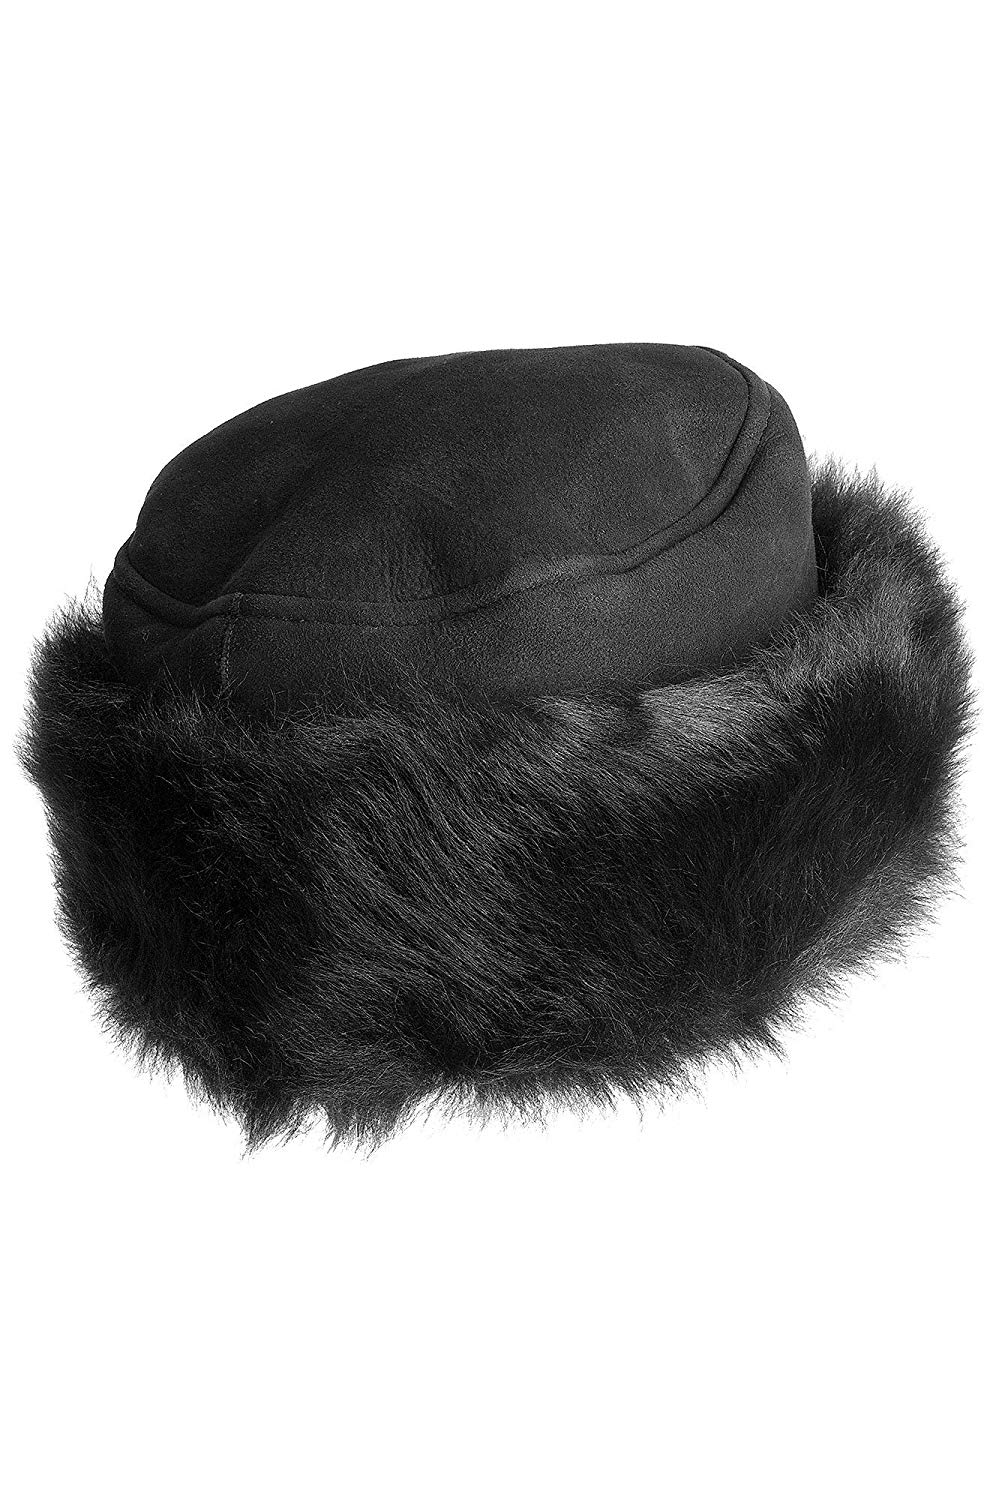 67fcbcc5 Get Quotations · Overland Sheepskin Co Russian Shearling Sheepskin Cossack  Hat with Toscana Trim